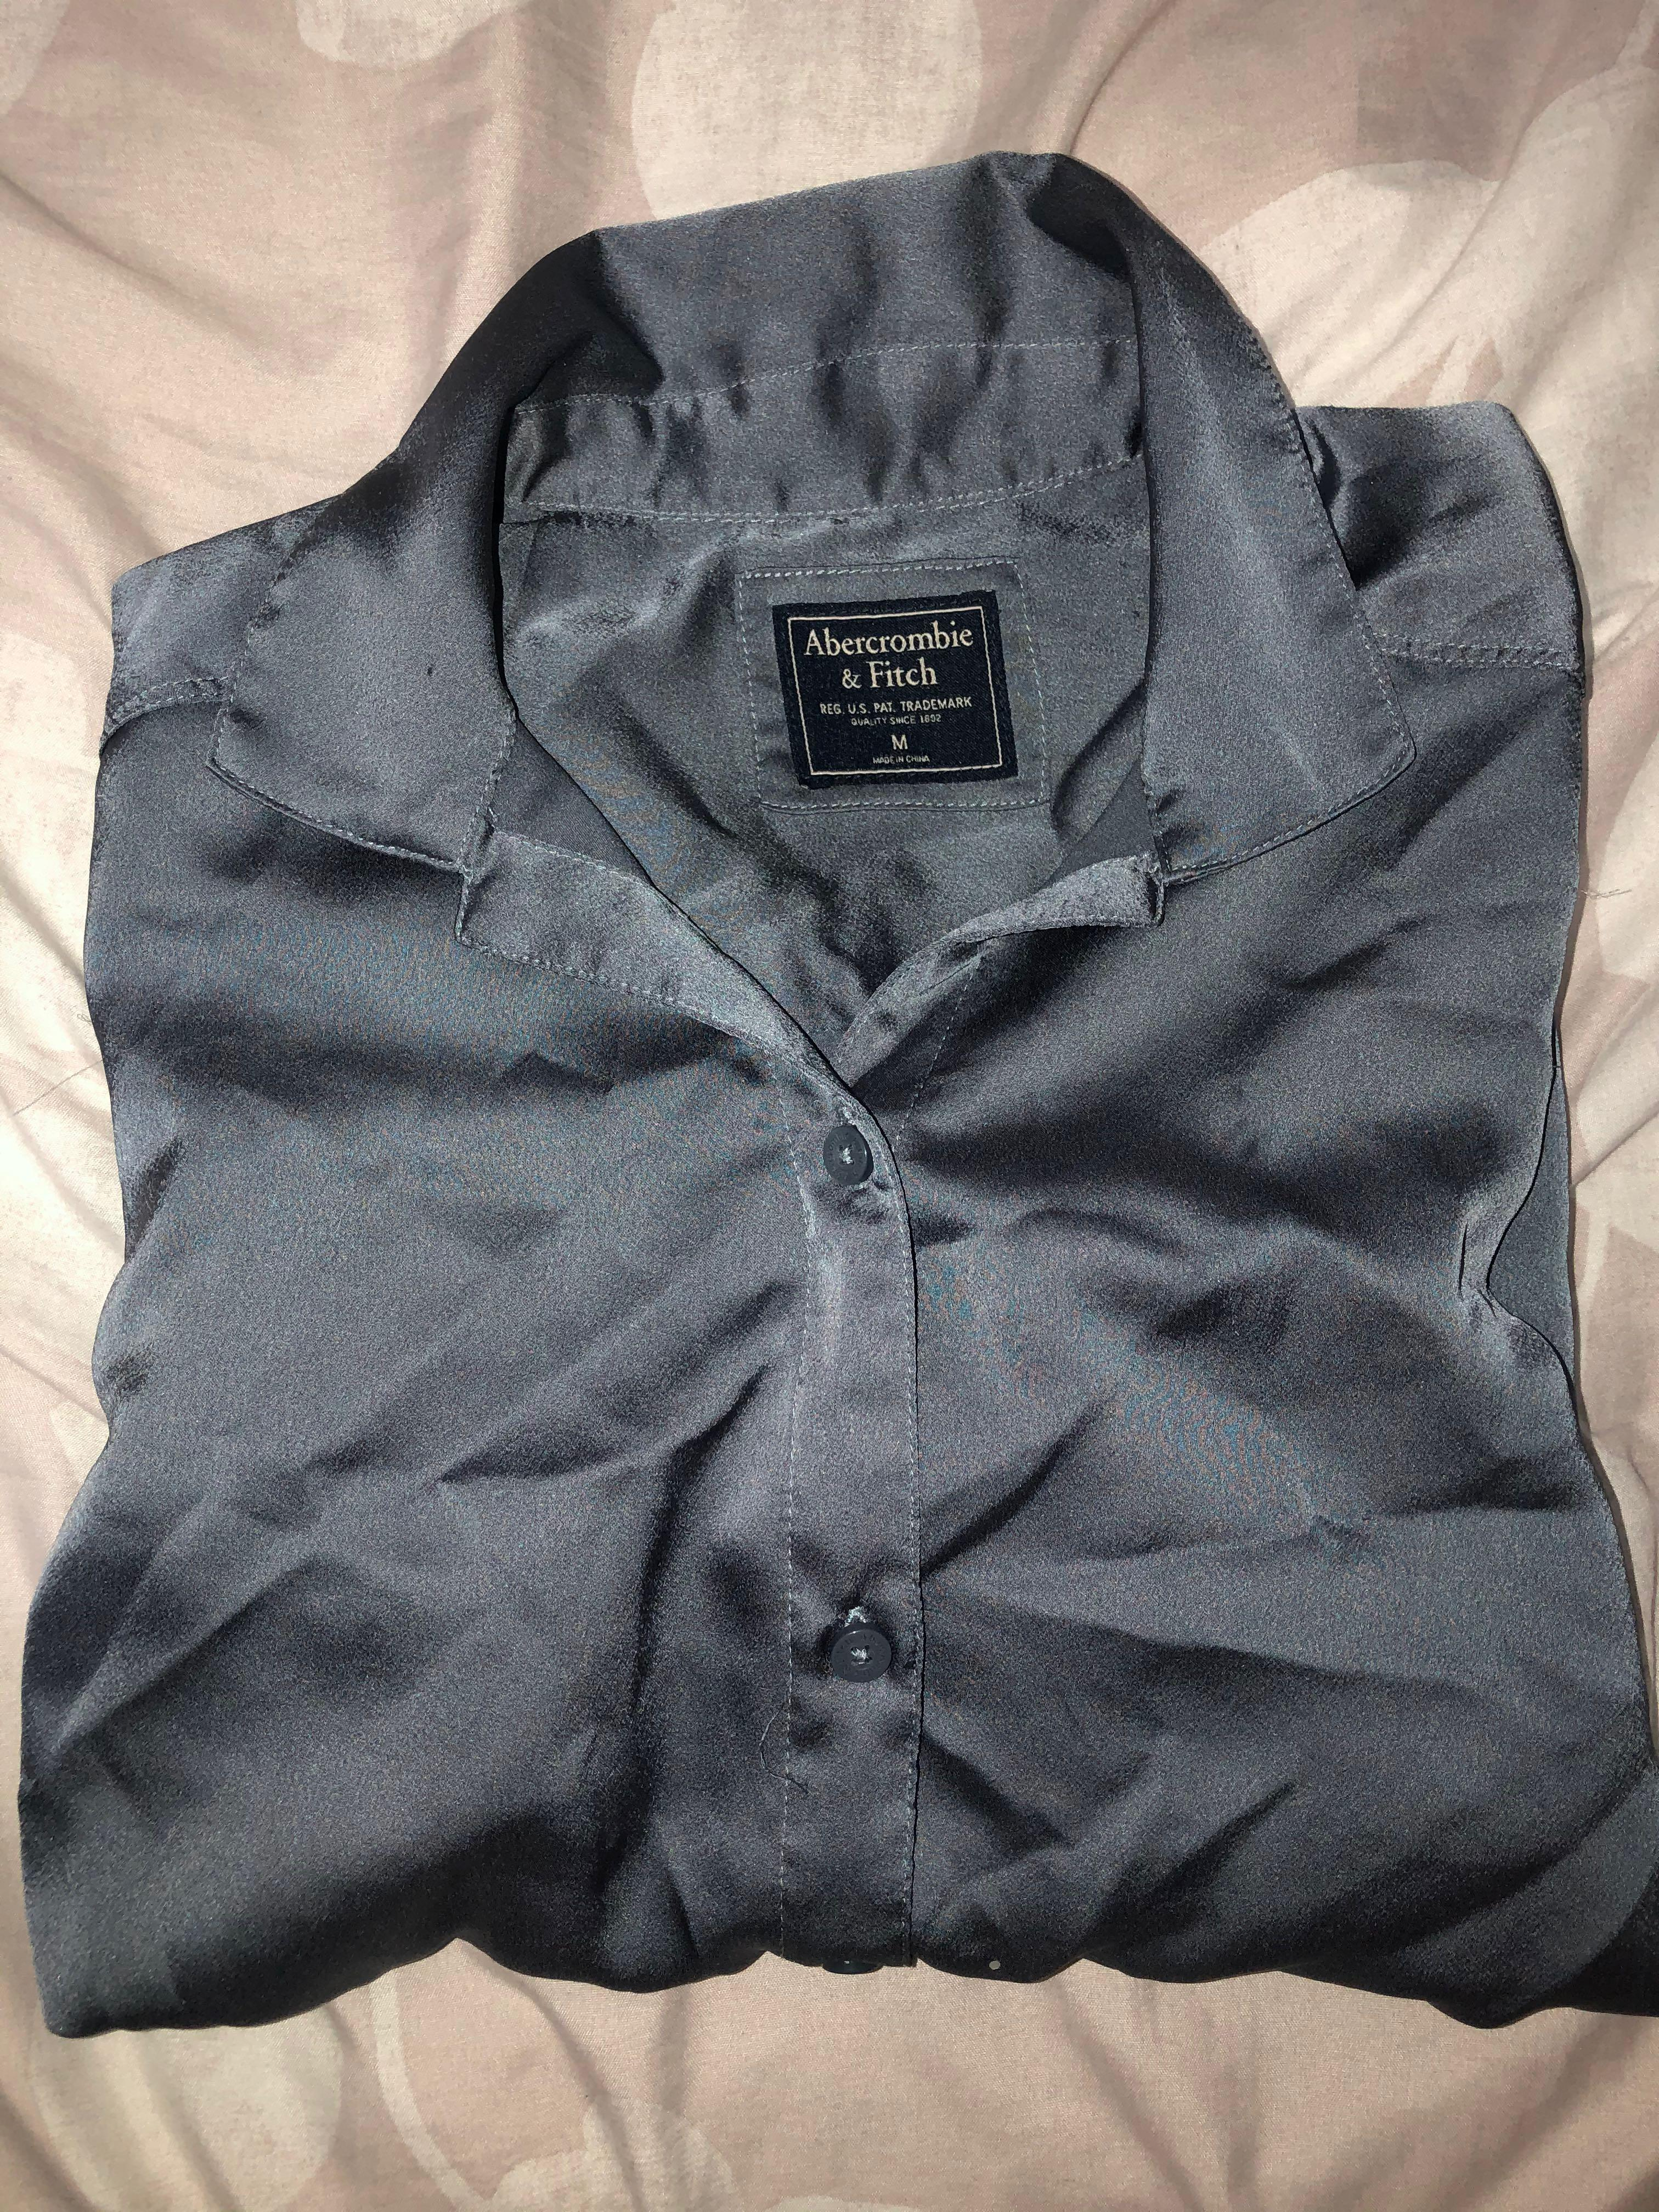 Abercrombie & Fitch satin button up